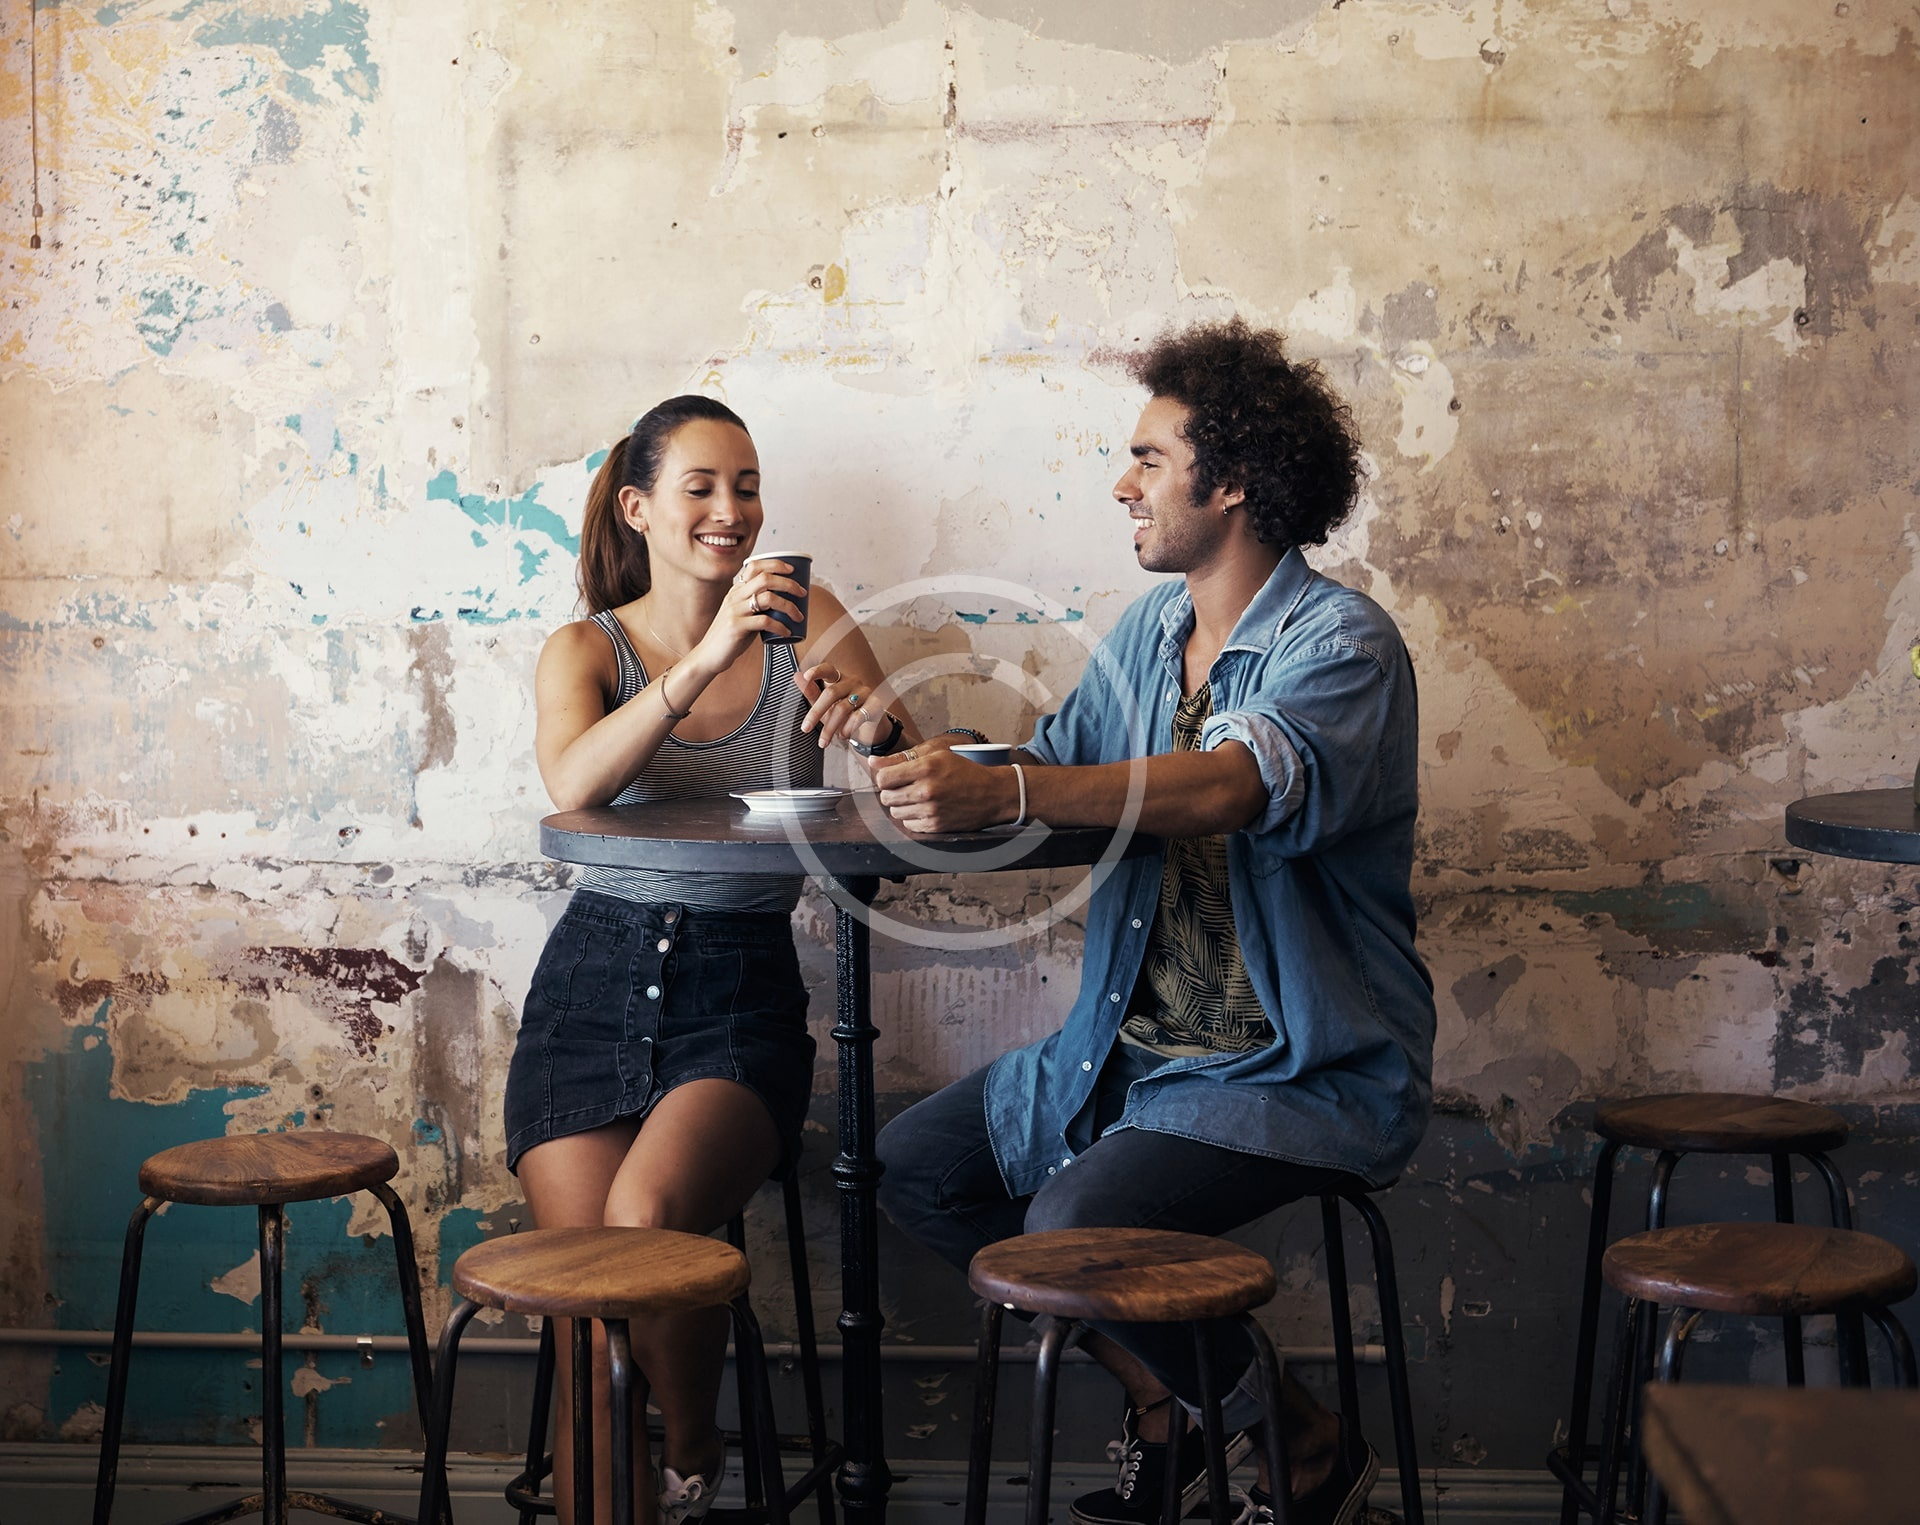 Having a Relationship at Work: Pros & Cons